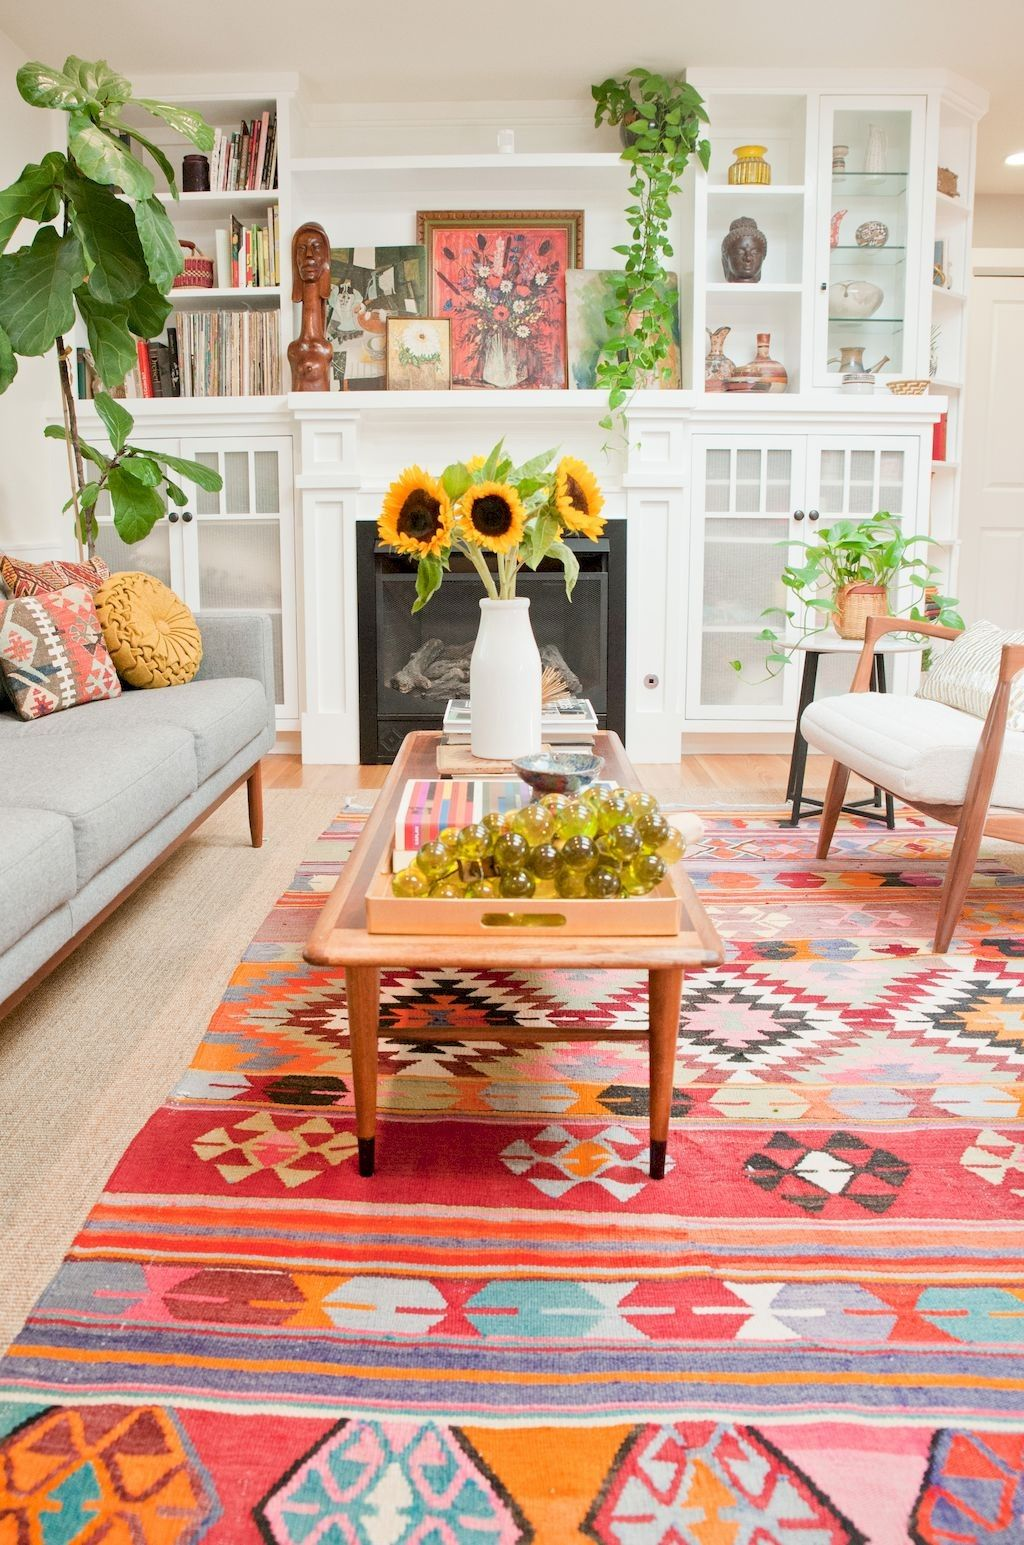 45+Arresting Retro Living Room Decorating Ideas on A Budget images